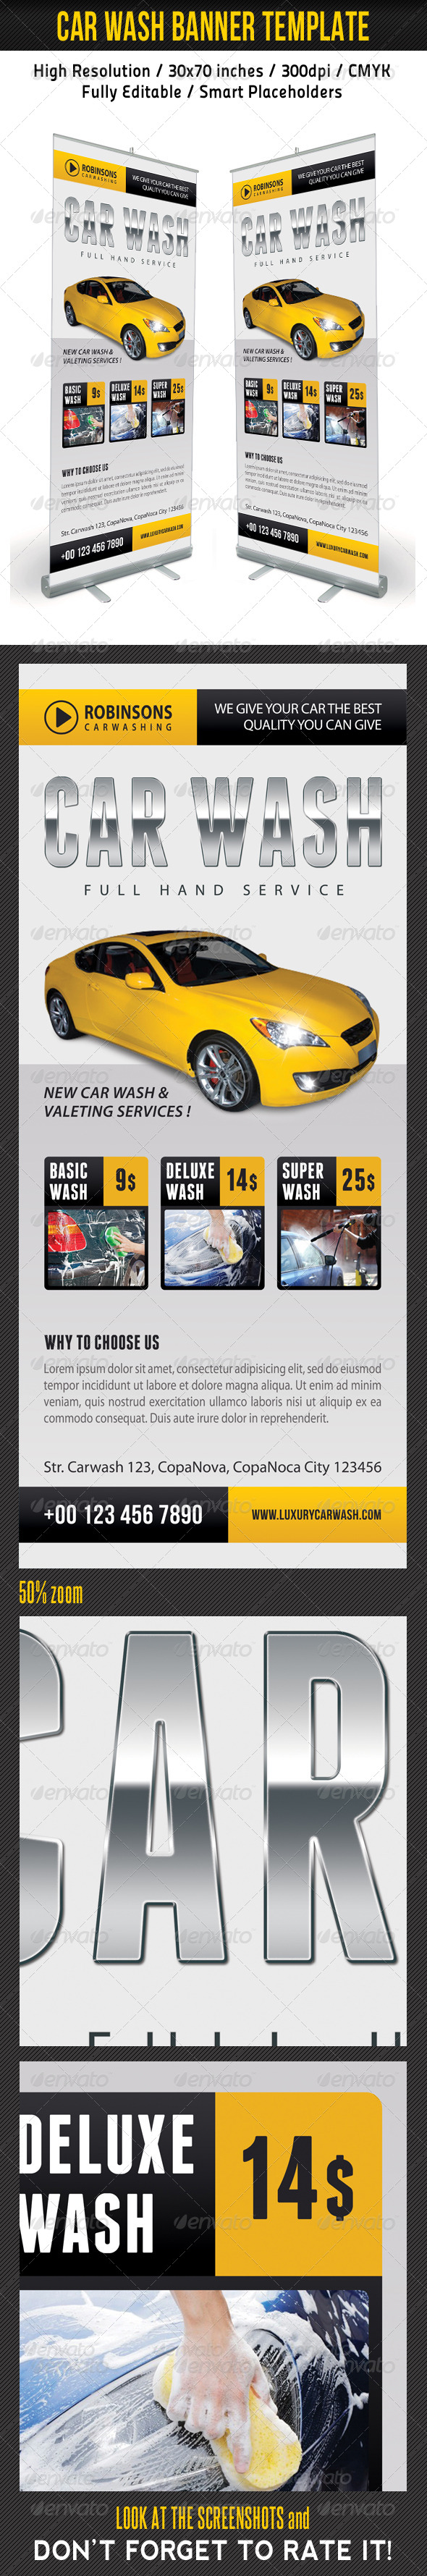 GraphicRiver Car Wash Banner Template 03 7989136